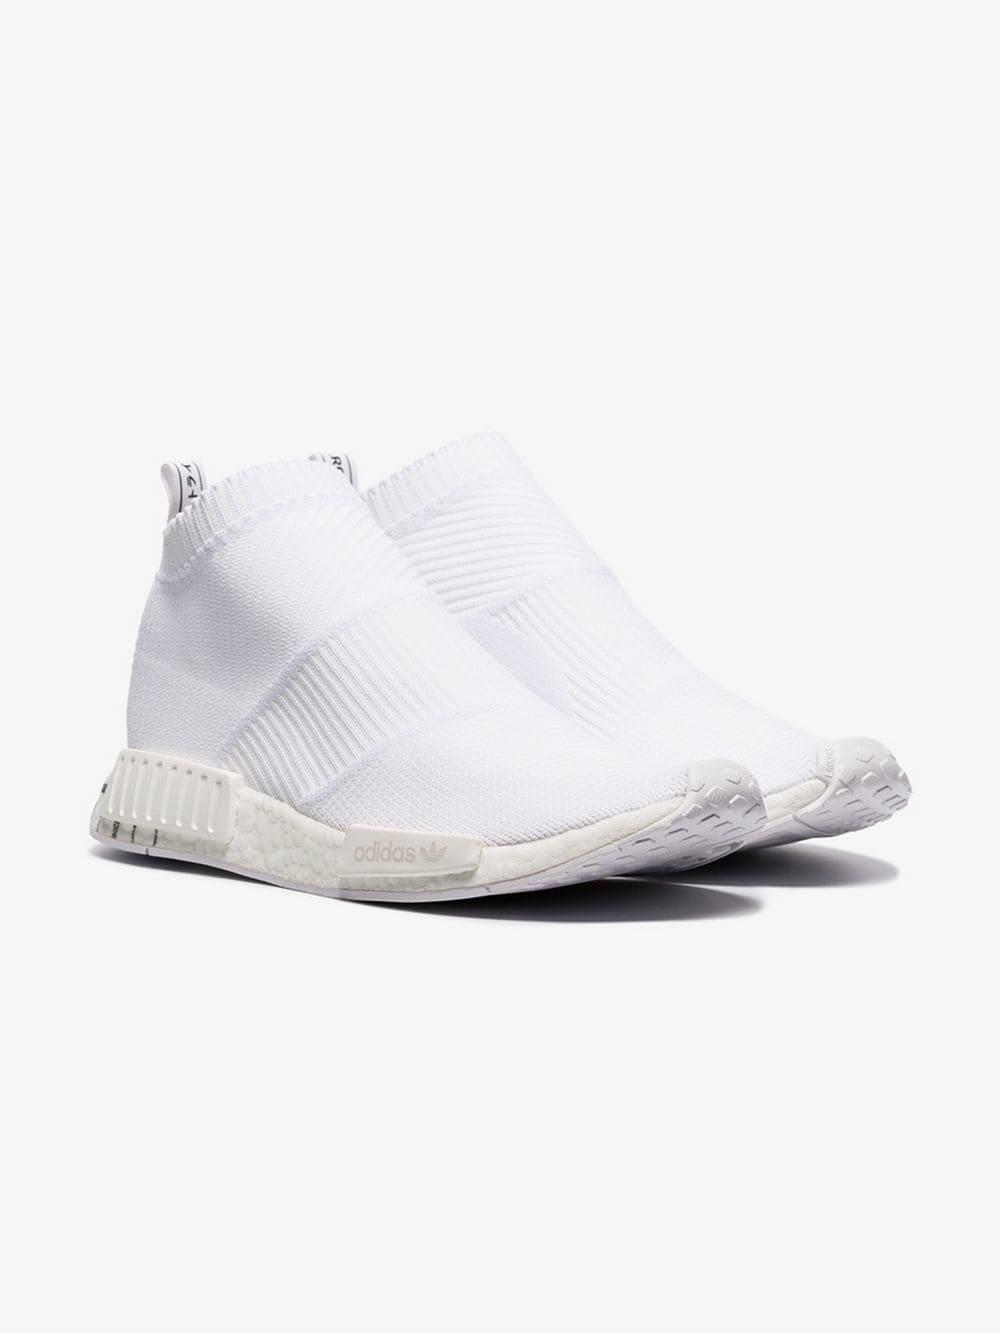 8a3d1ea4d Lyst - adidas Nmd Cs1 Sneakers in White for Men